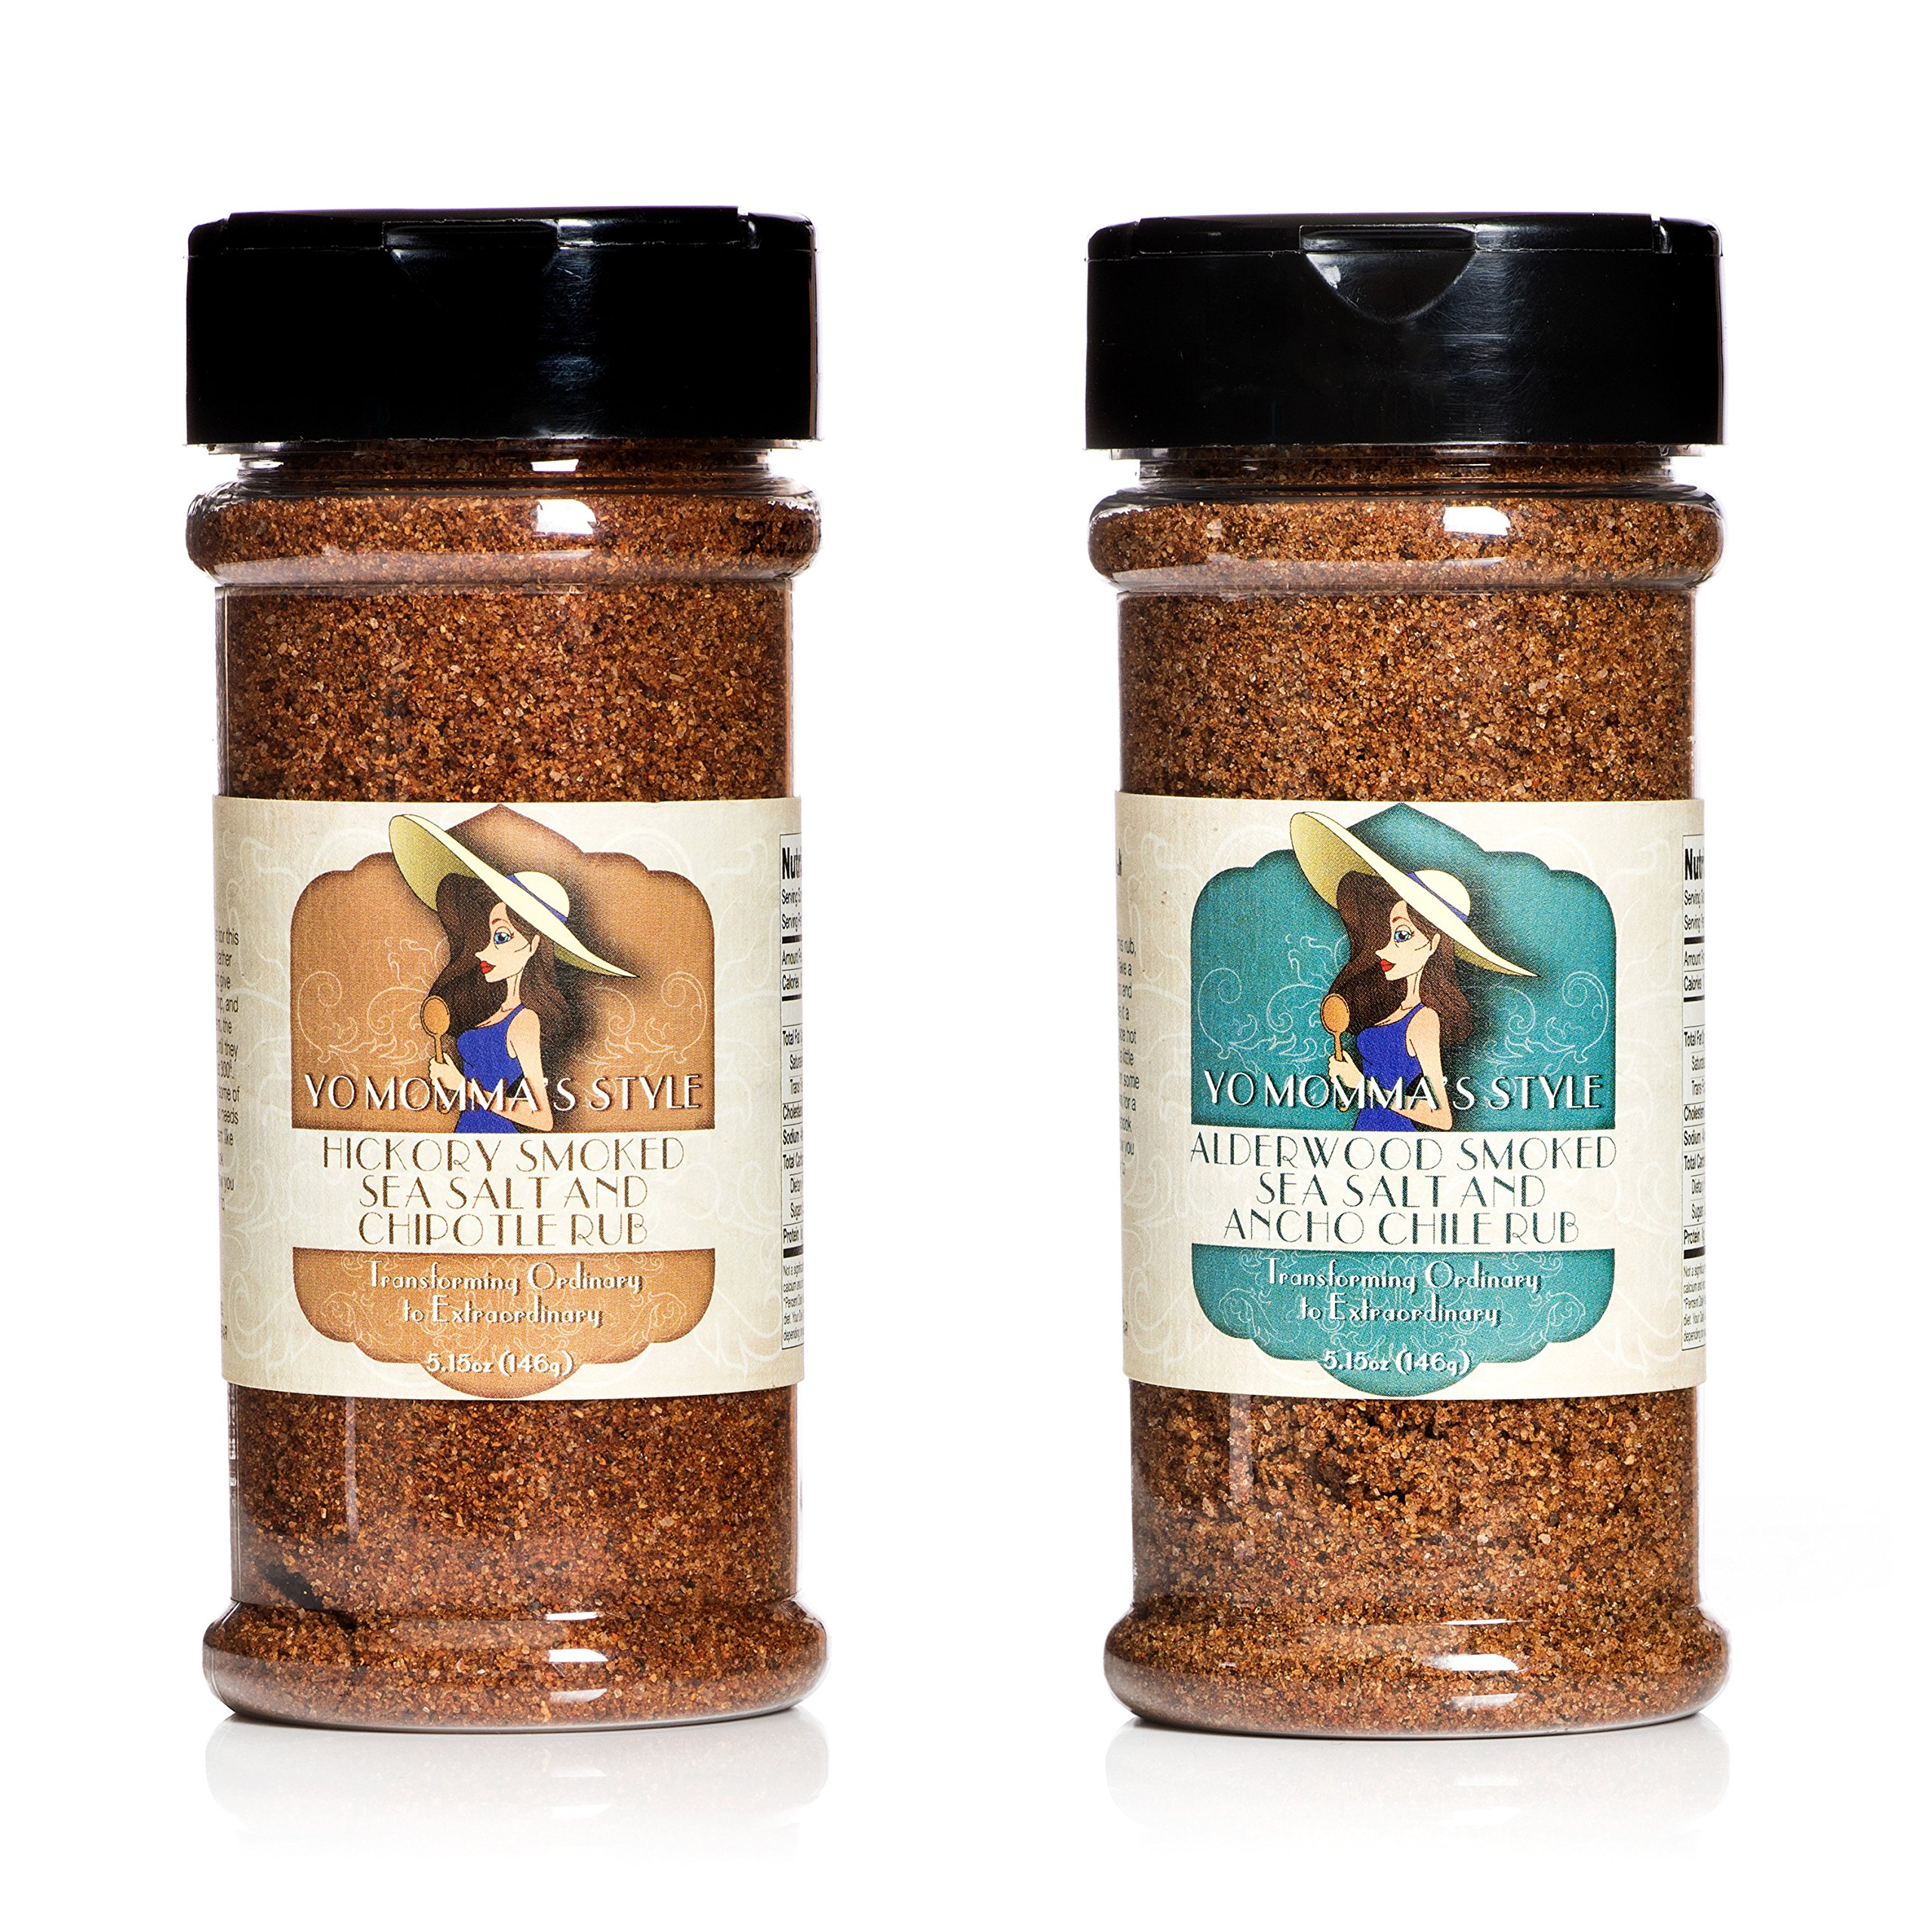 Yo Momma's Style All Natural, Small Batch Spice Rub Combo Pack- Hickory Smoked Sea Salt & Chipotle, Alderwood Smoked Sea Salt & Ancho Chile Rub - 5.15oz, Pack of 2